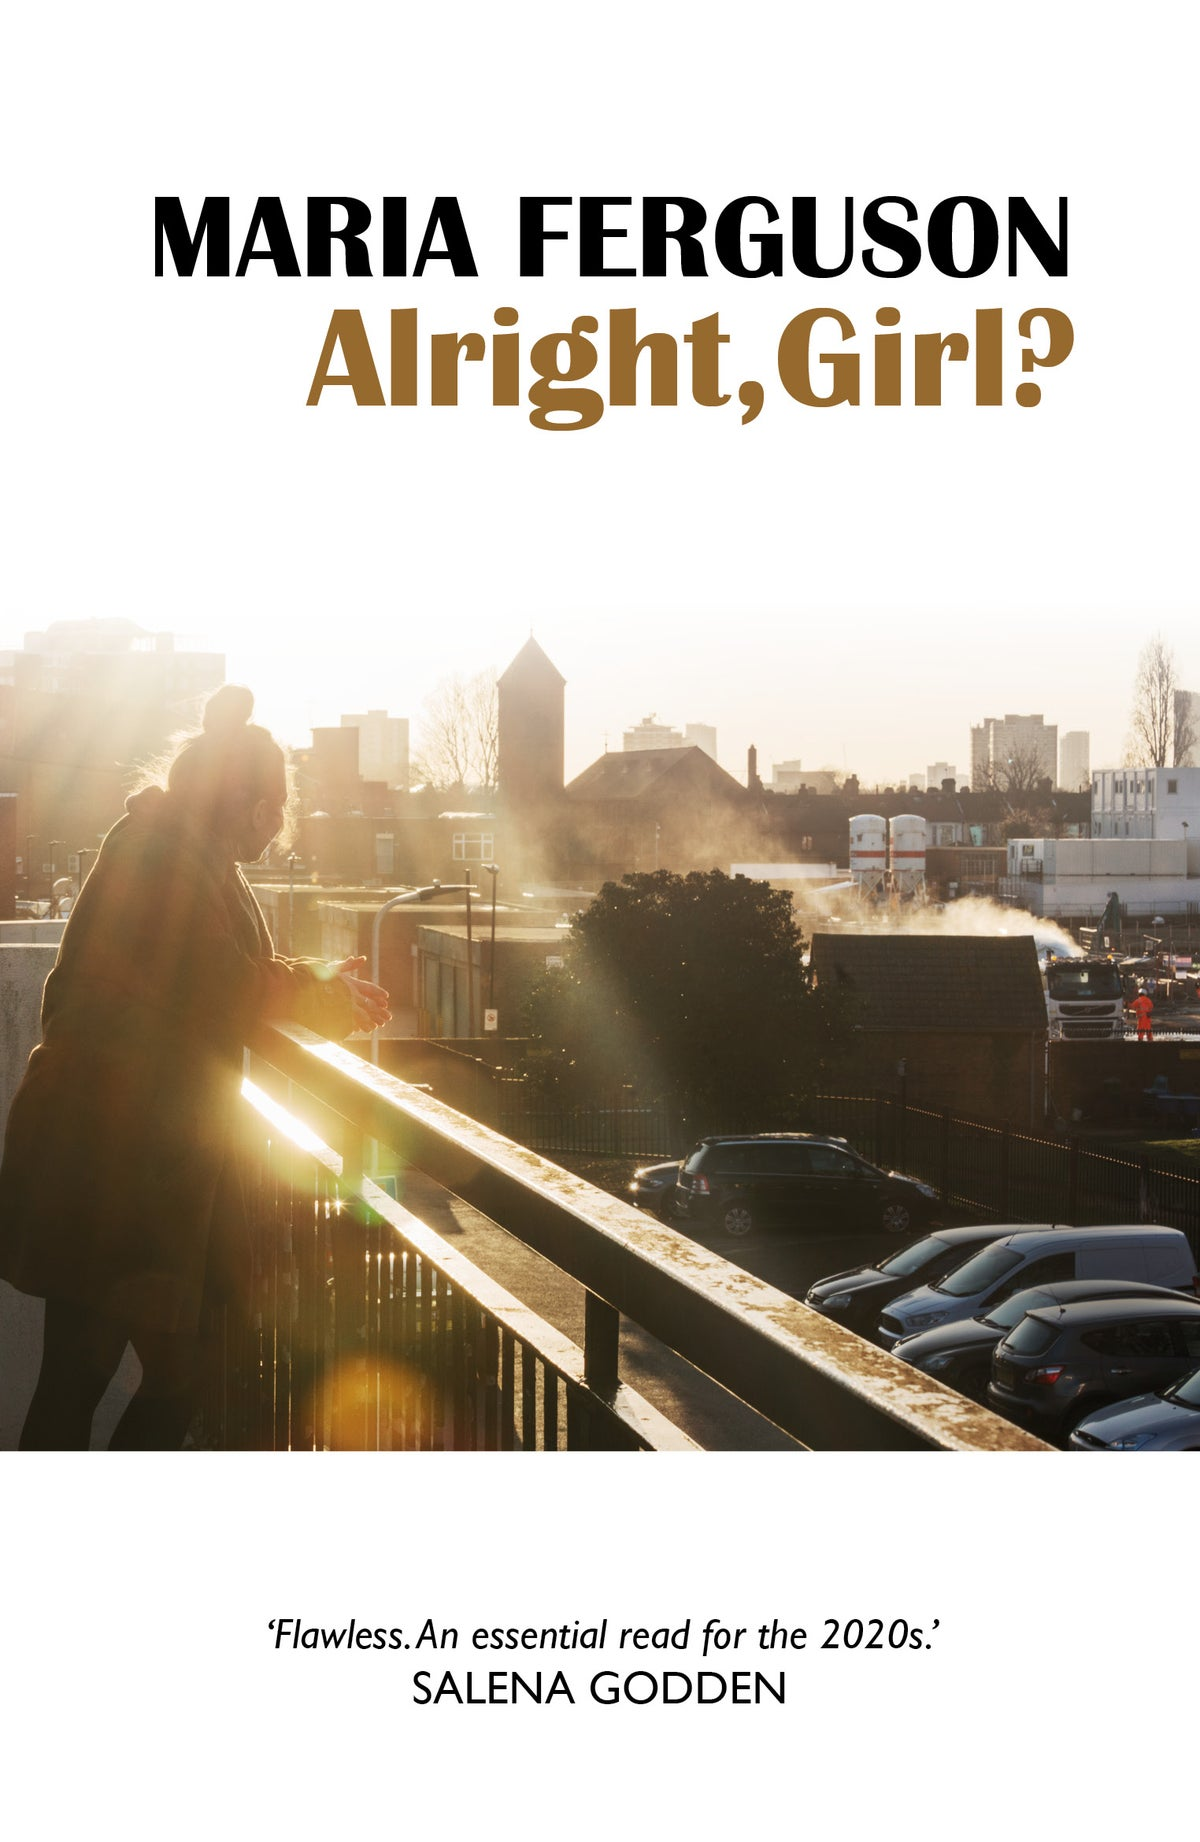 Image of Alright, Girl? by Maria Ferguson